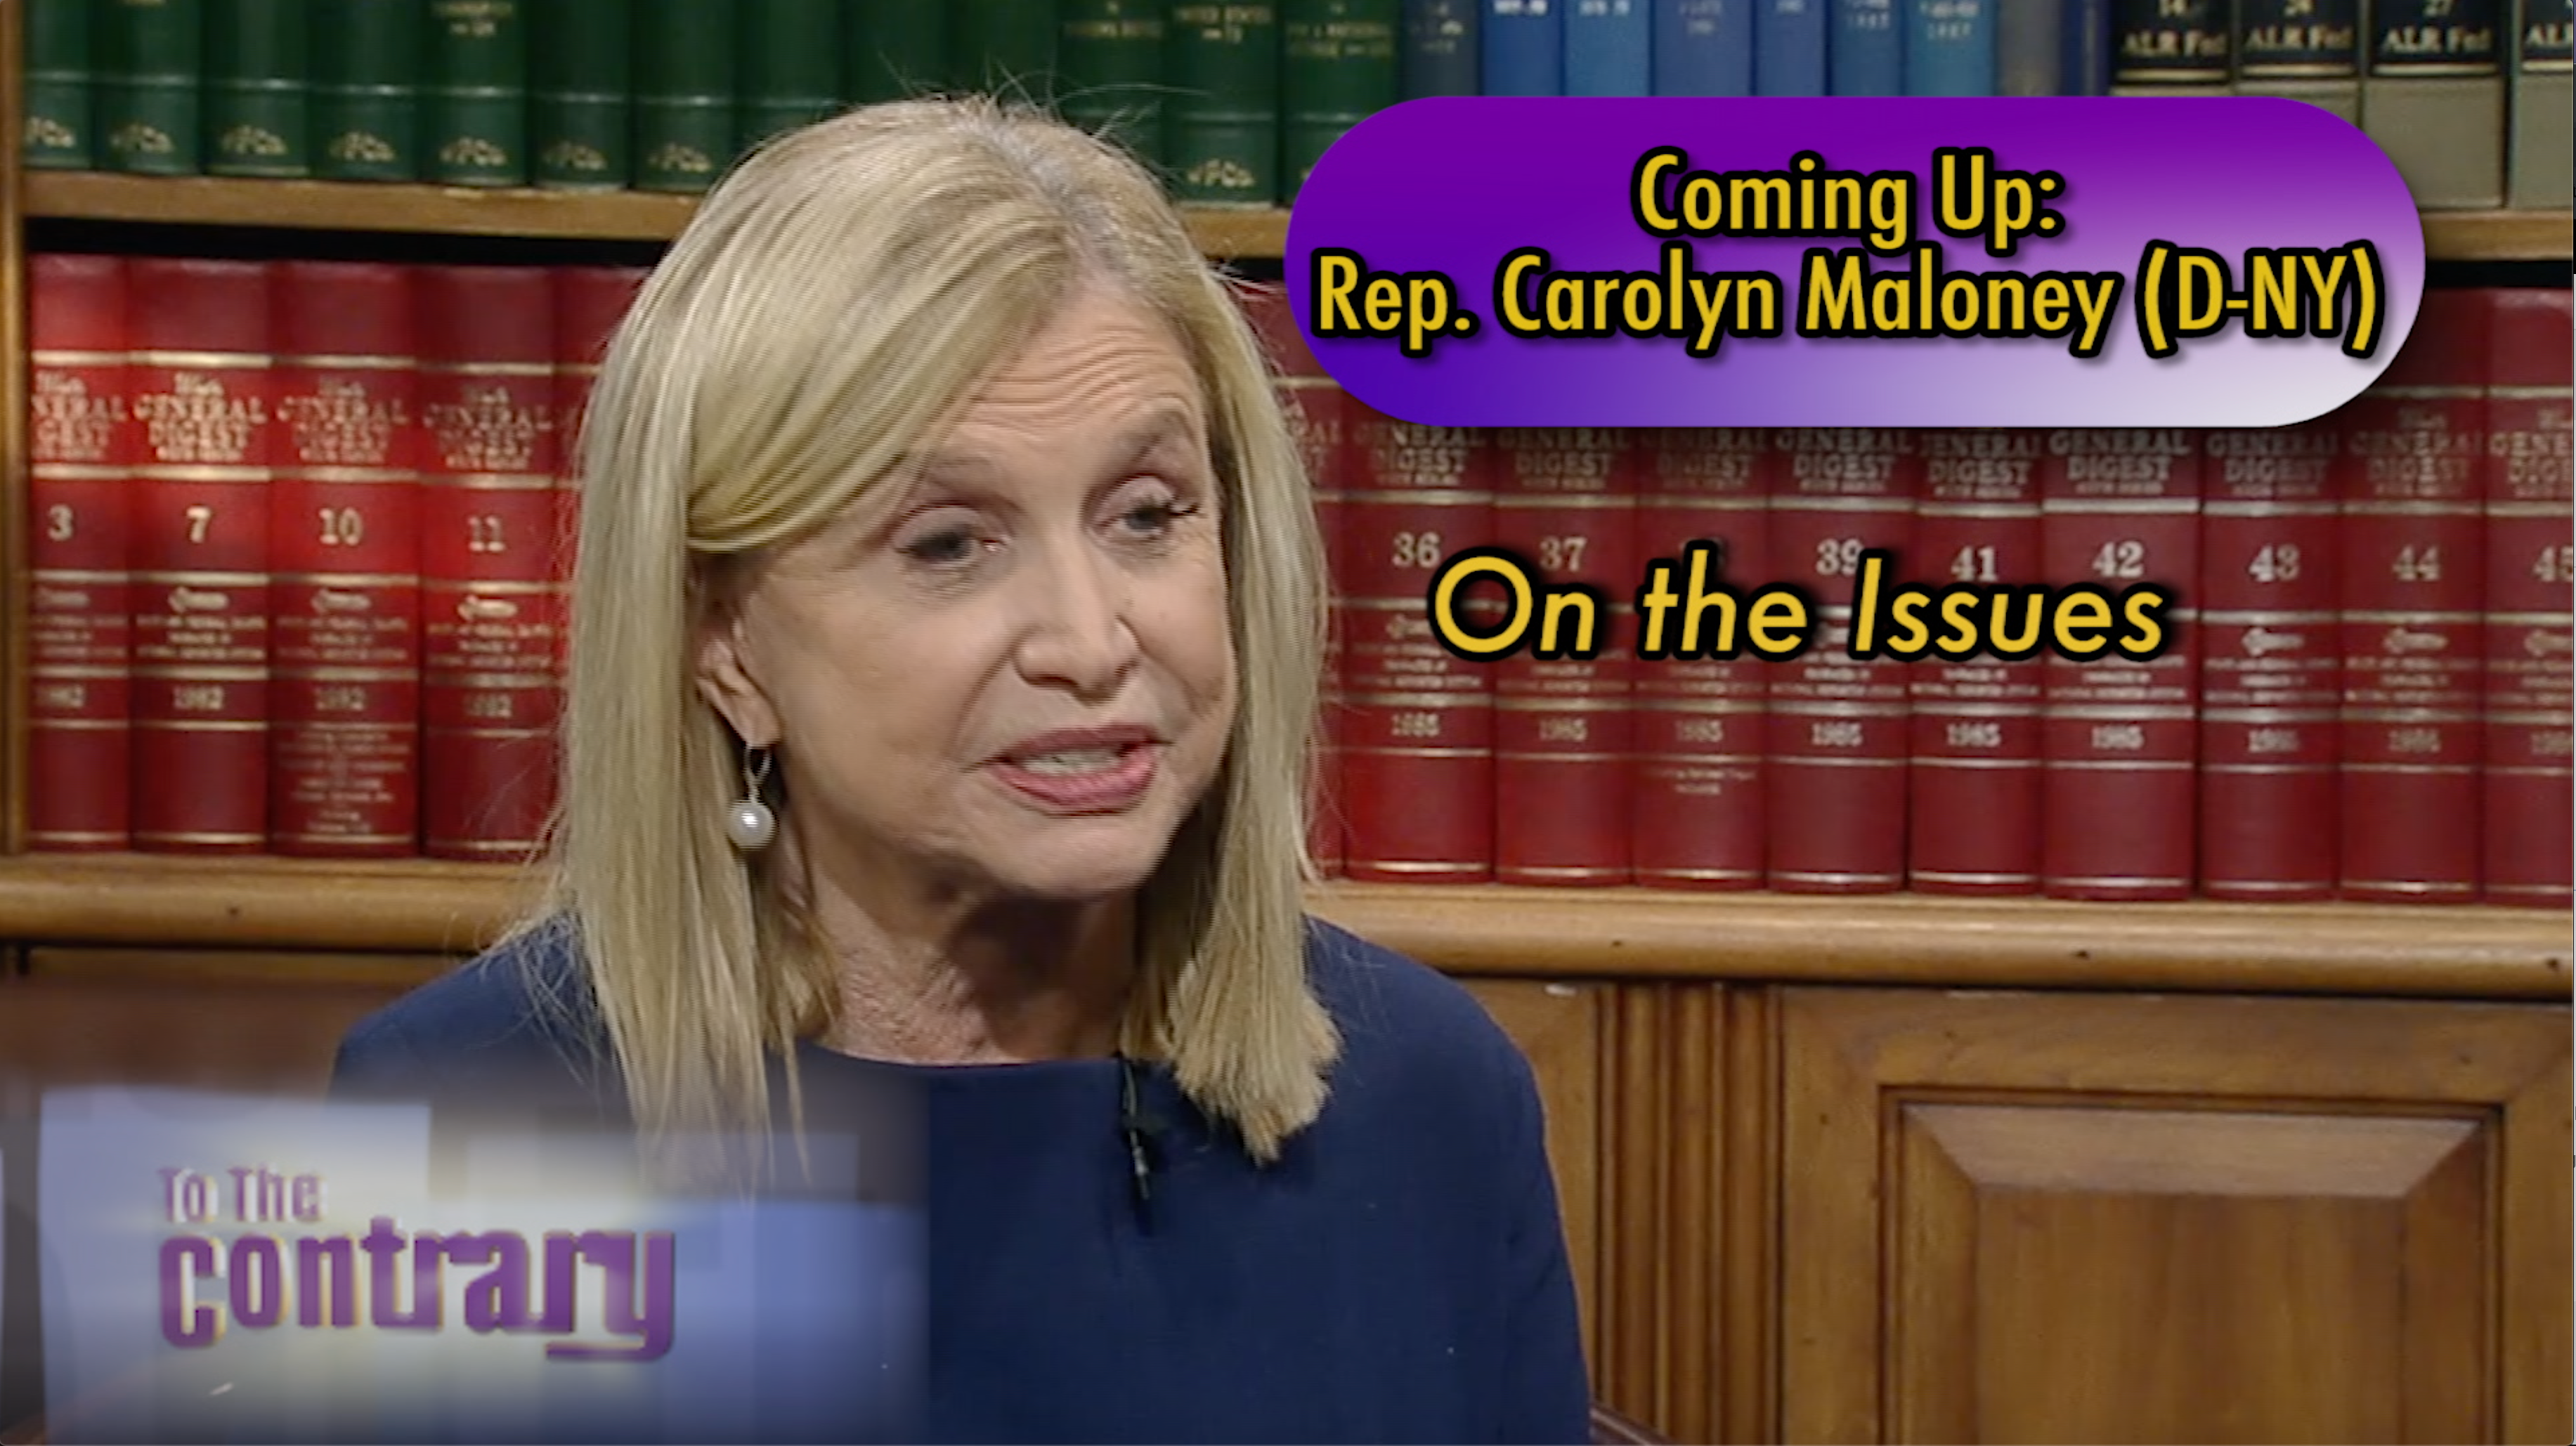 Woman Thought Leader: Rep. Carolyn Maloney (D-NY)